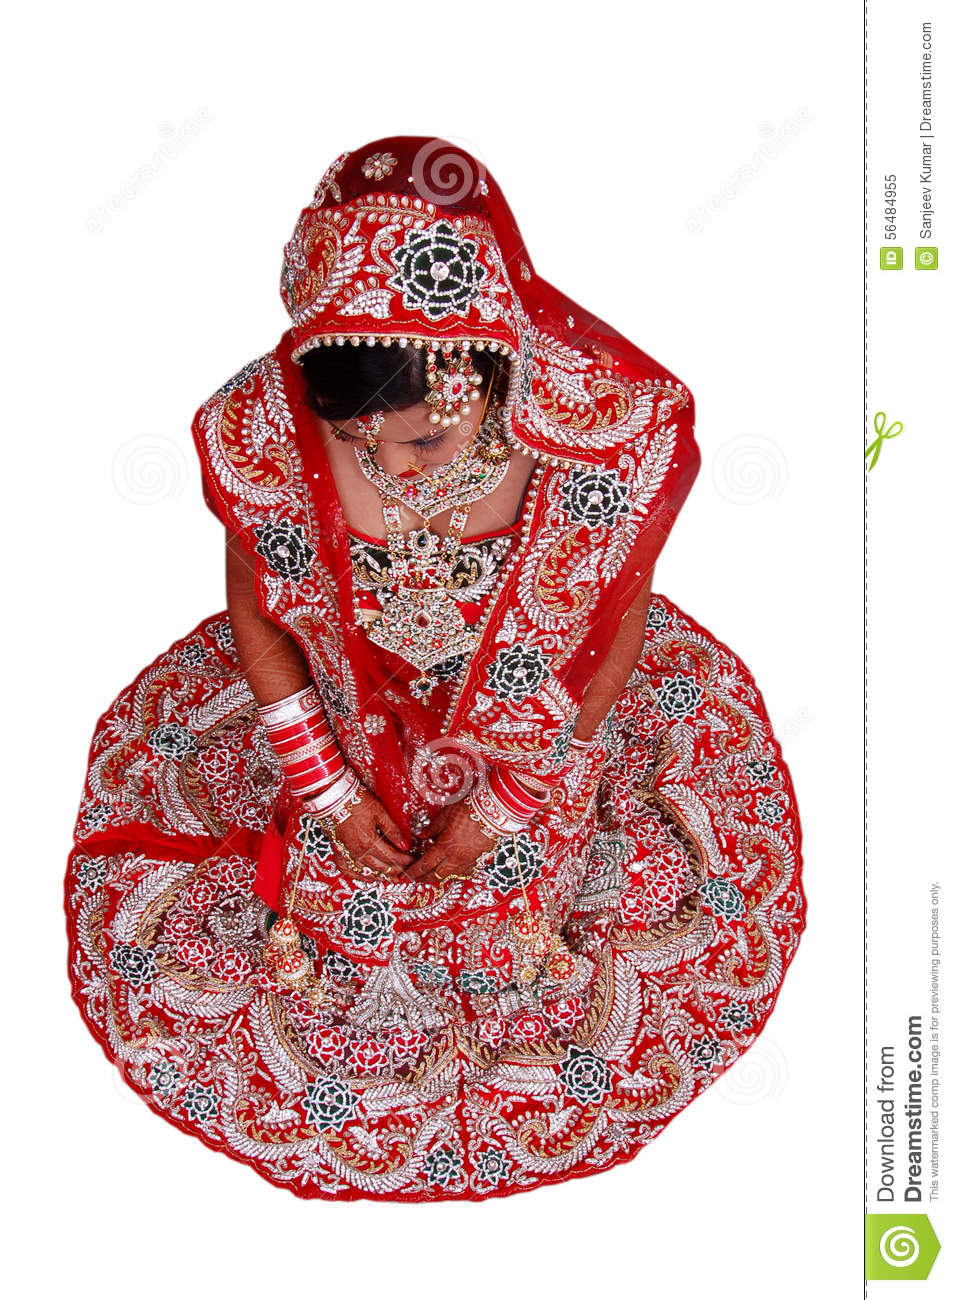 Fille nuptiale indienne